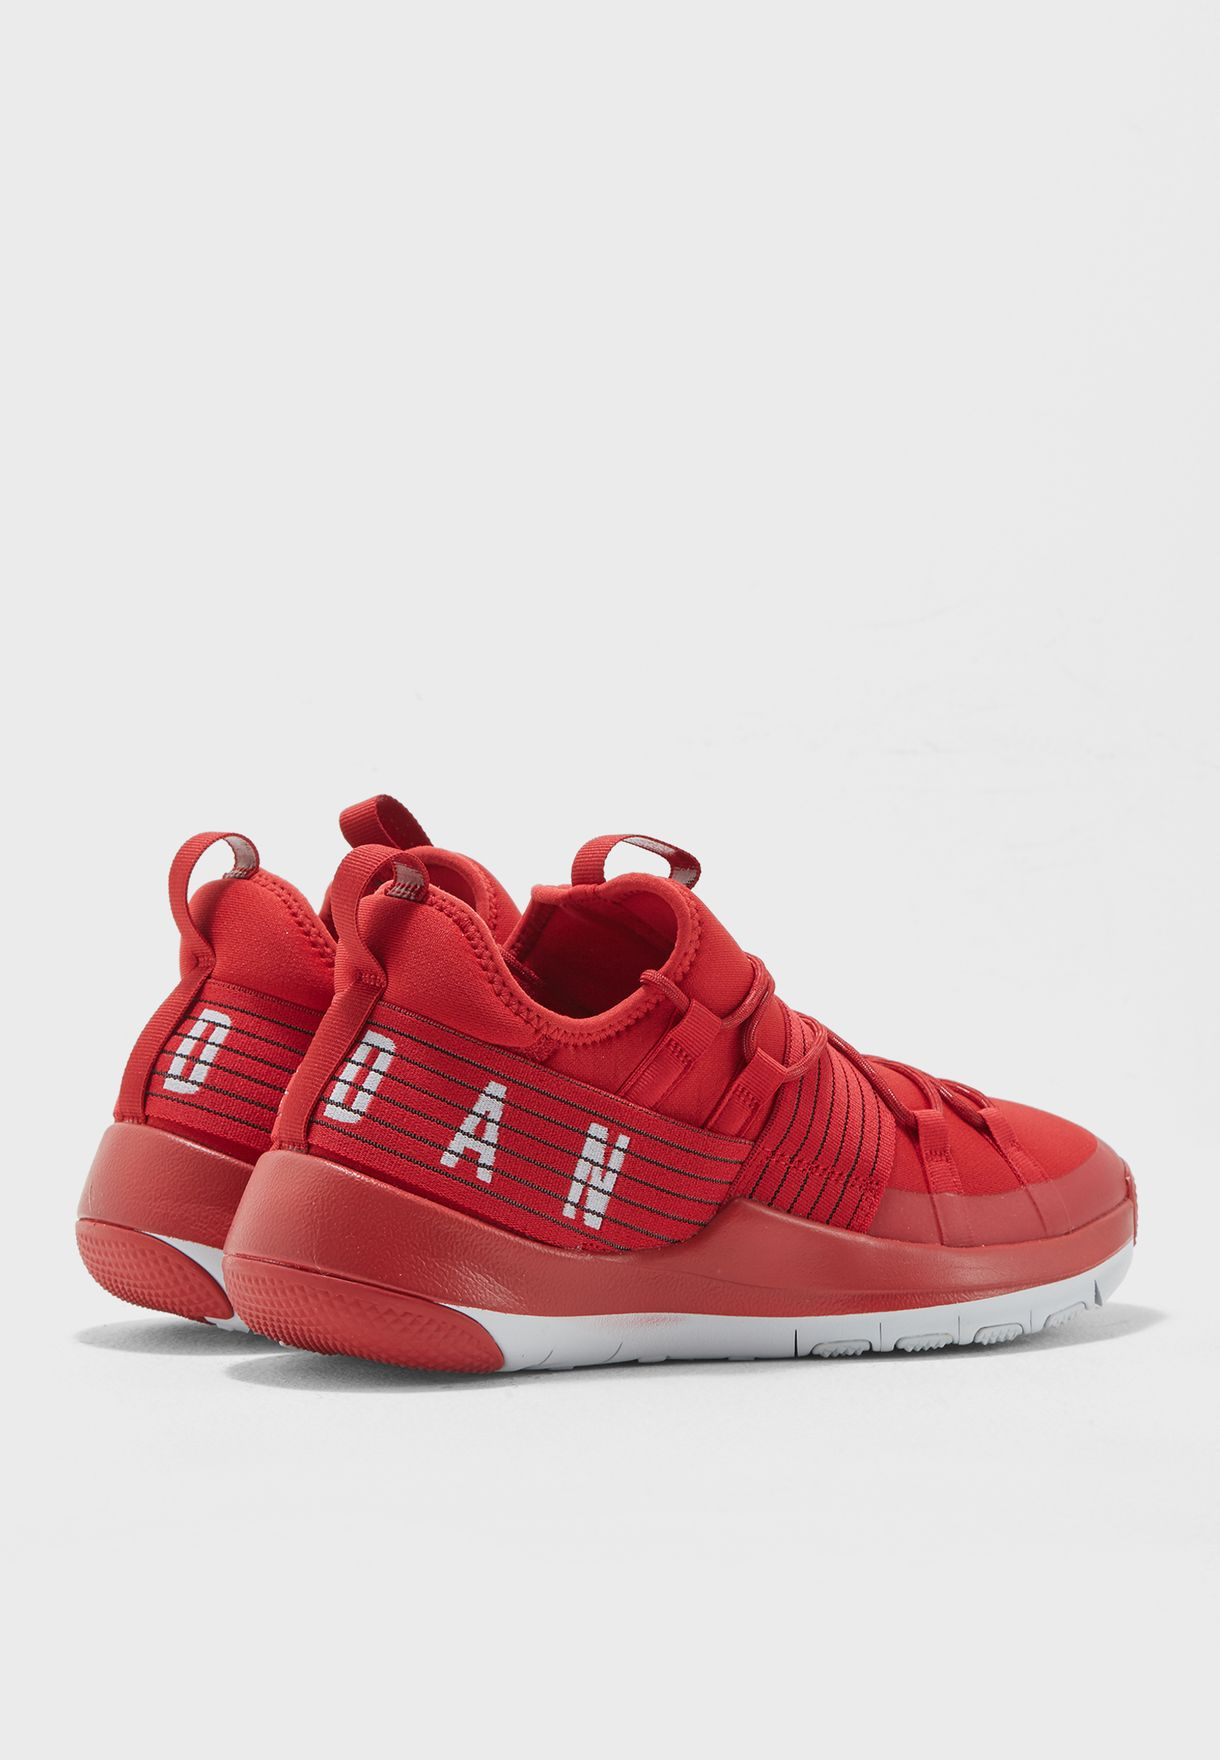 407c508a39f9b3 Shop Nike red Jordan Trainer Pro AA1344-603 for Men in UAE ...